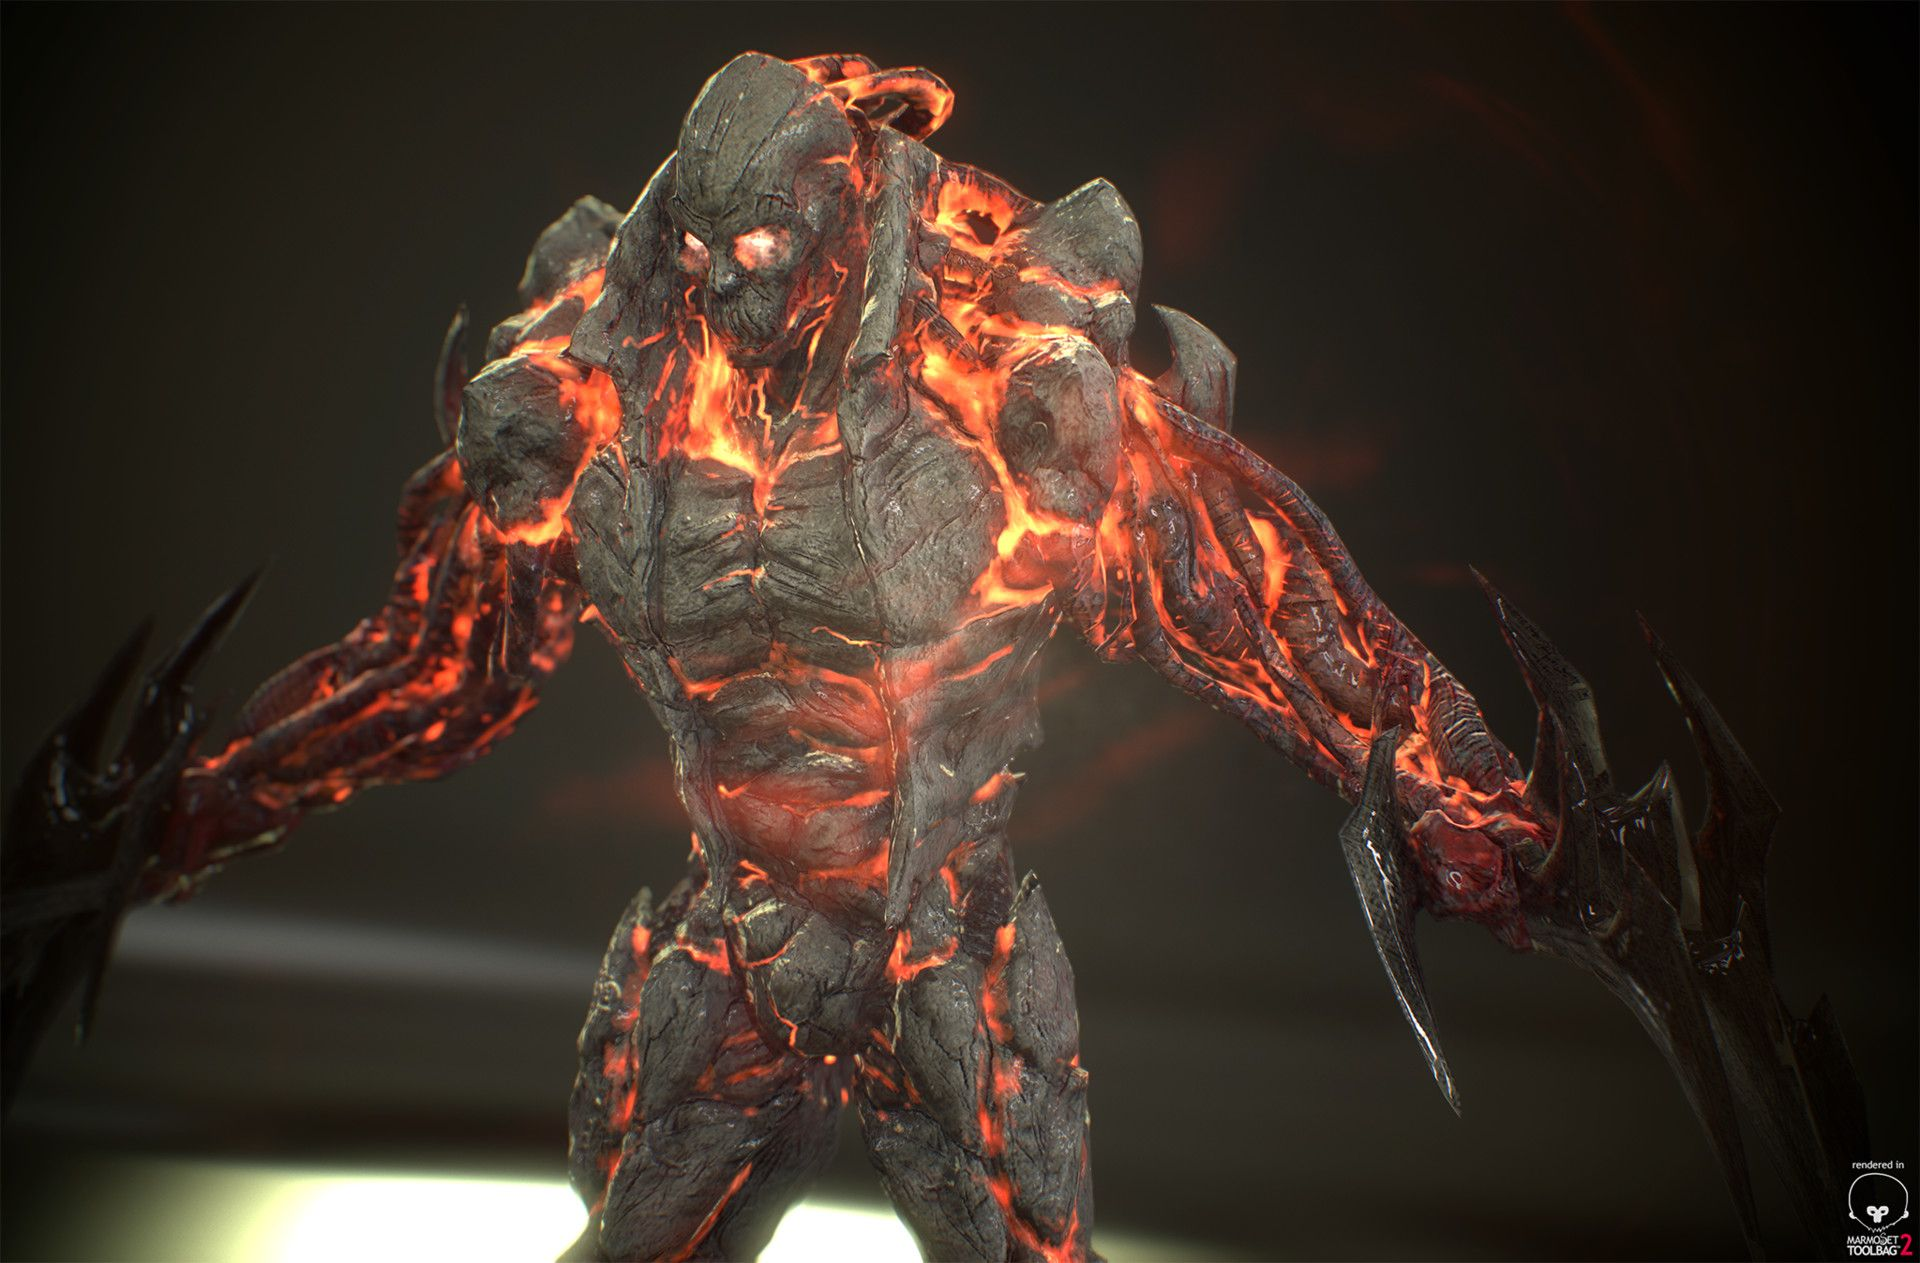 It's a Lava Goliath that I did for a tutorial for CMIVFX